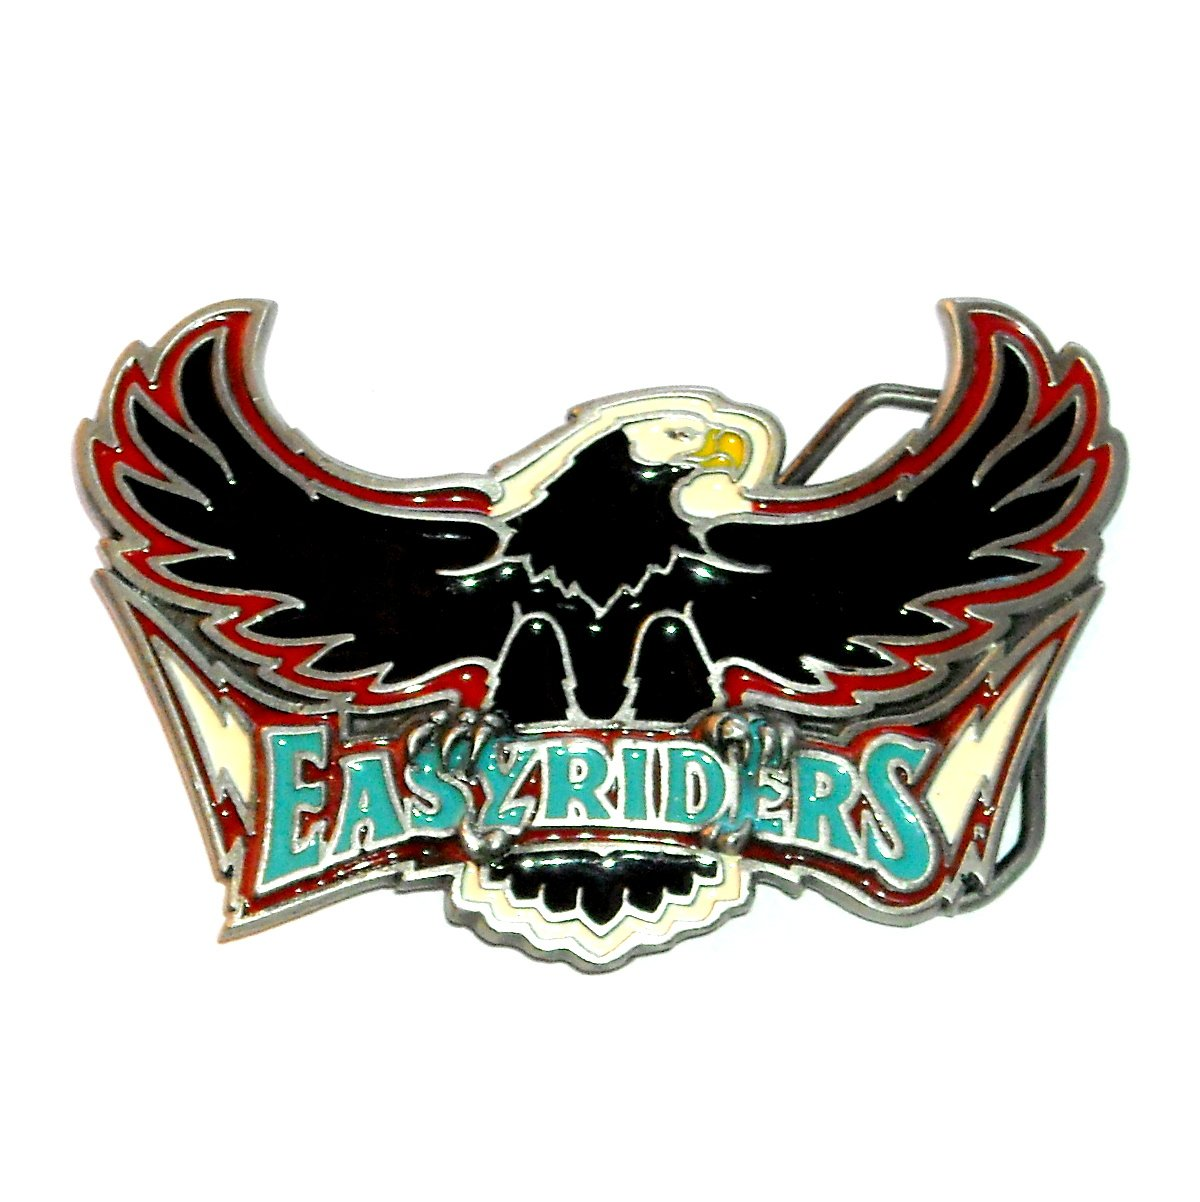 Easy Riders Vintage Great American Pewter Belt Buckle